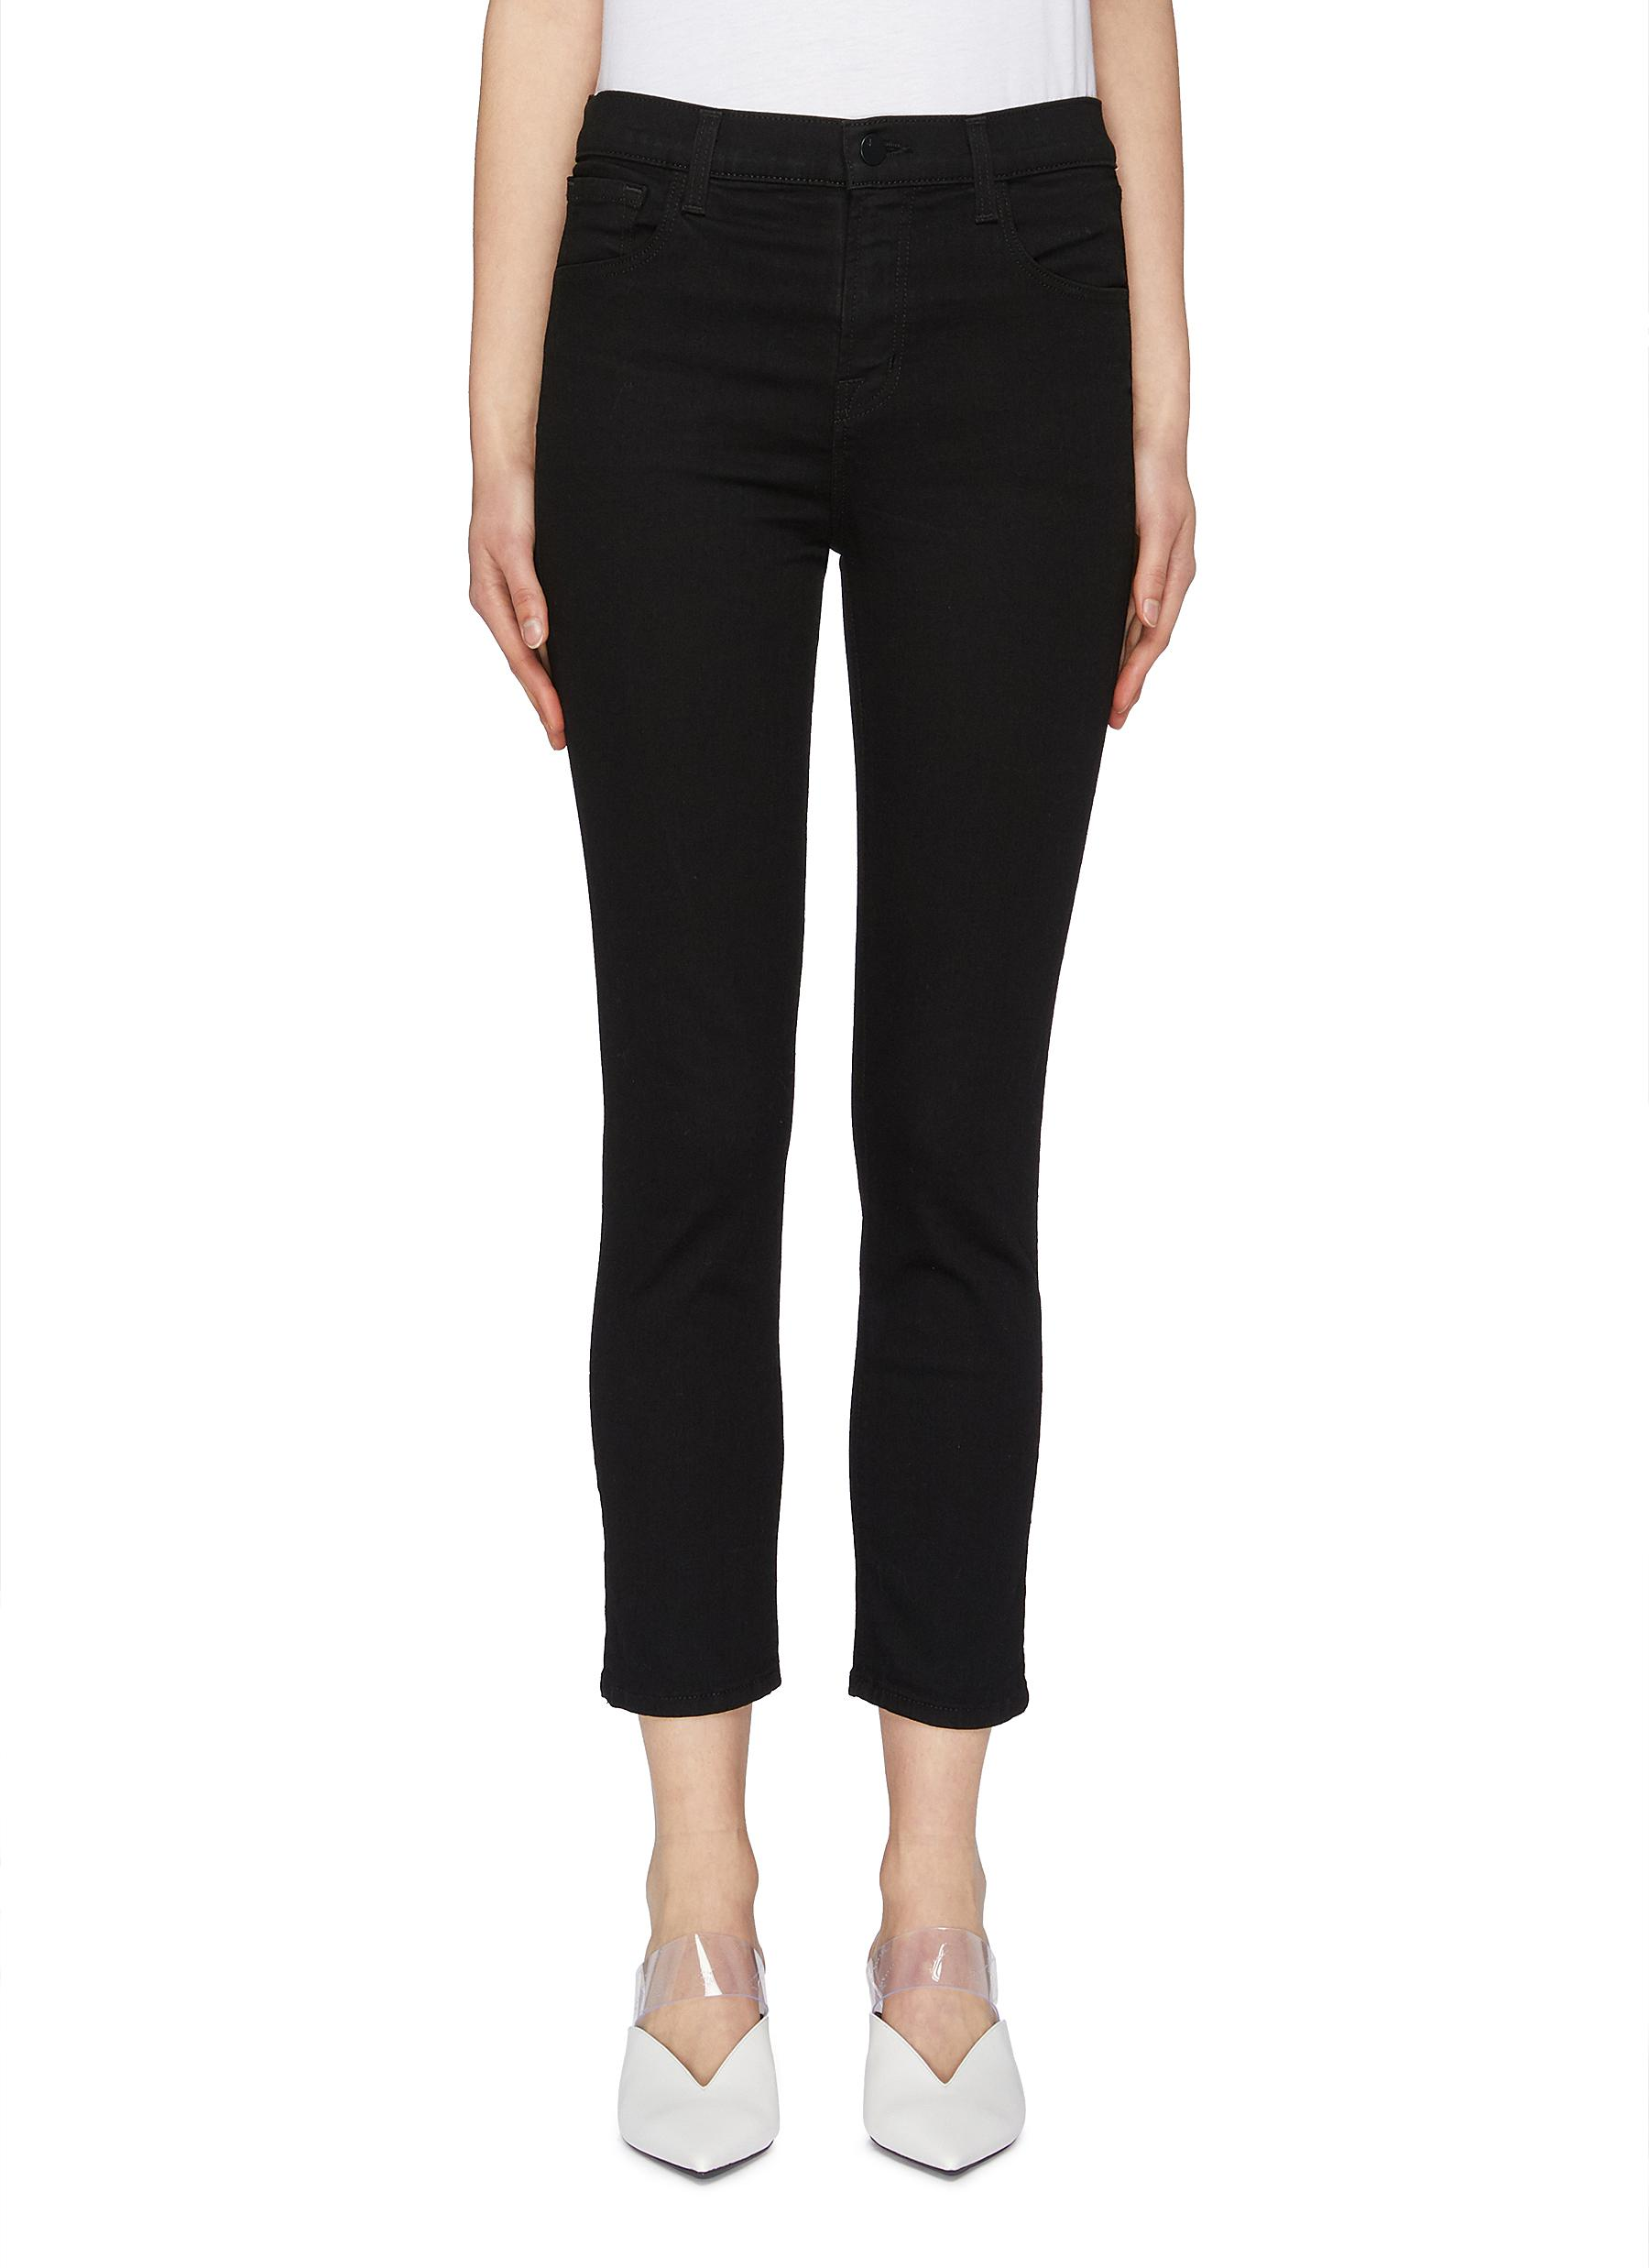 Ruby cigarette jeans by J Brand